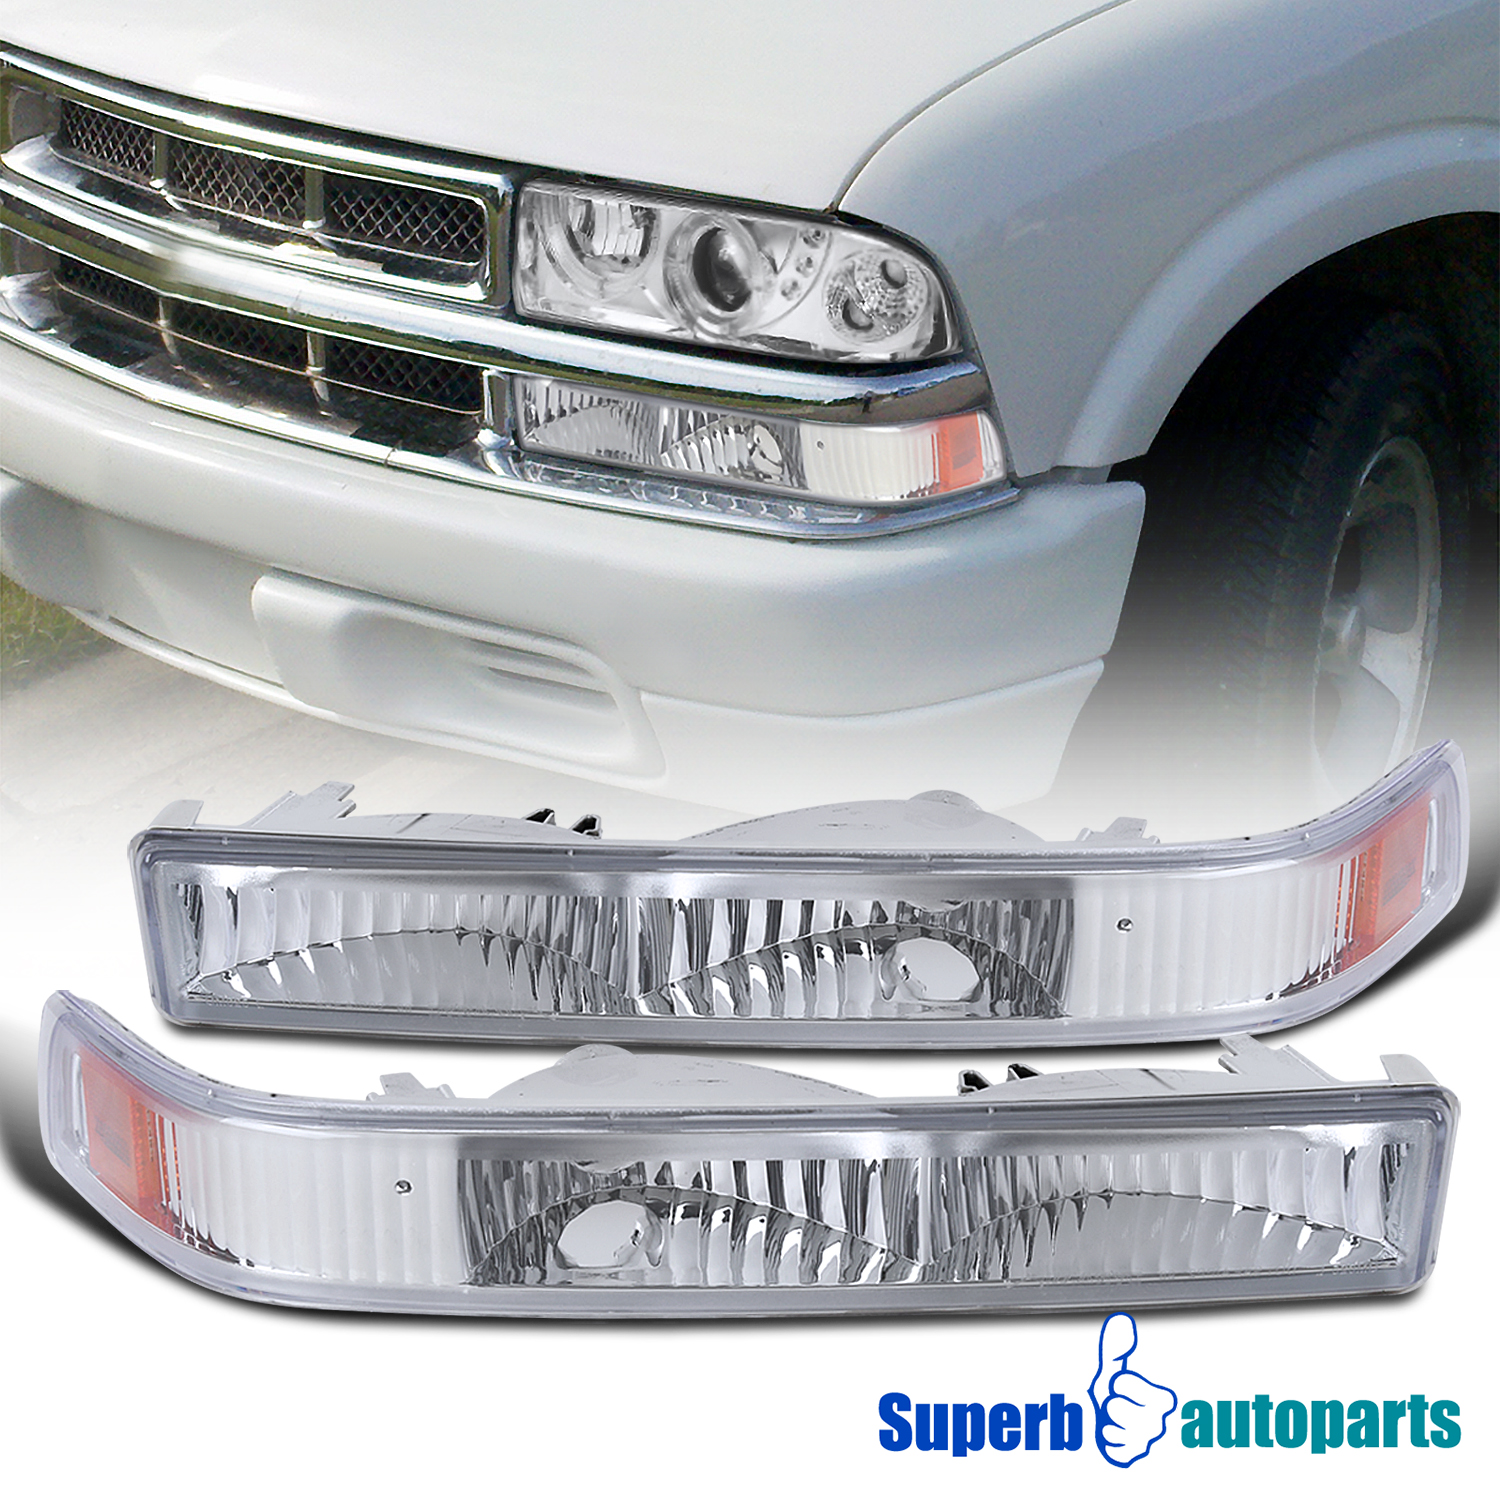 Details about For 1998-2004 Chevy S10 Blazer GMC Sonoma Trunk Pickup Front  Bumper Lights